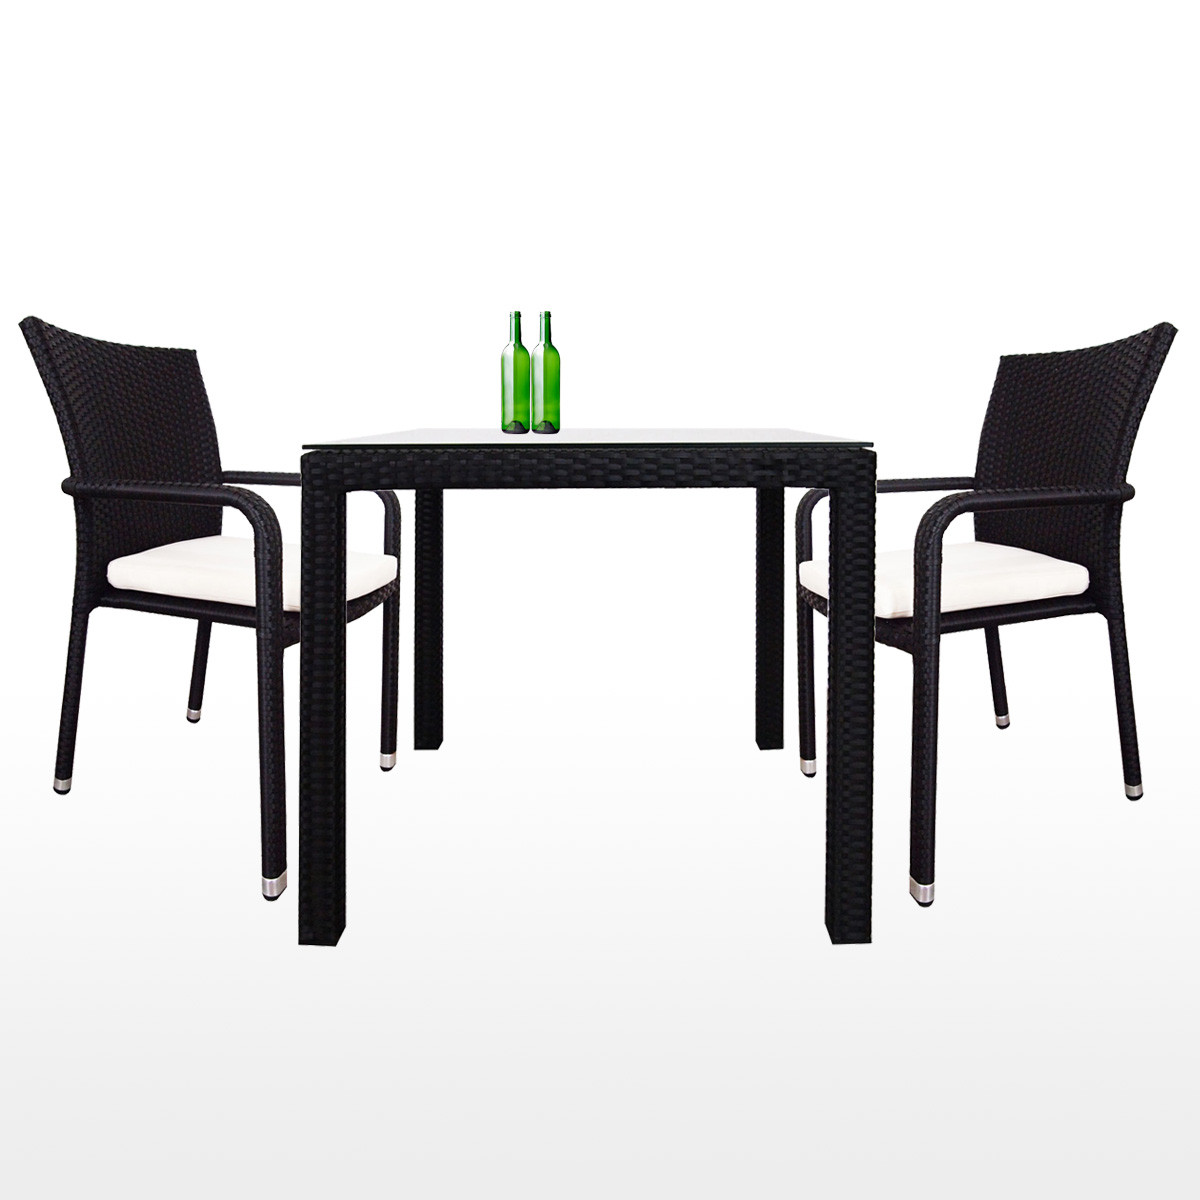 Palm 2 Chair Dining Set White Cushion 2 Year Warranty Outdoor